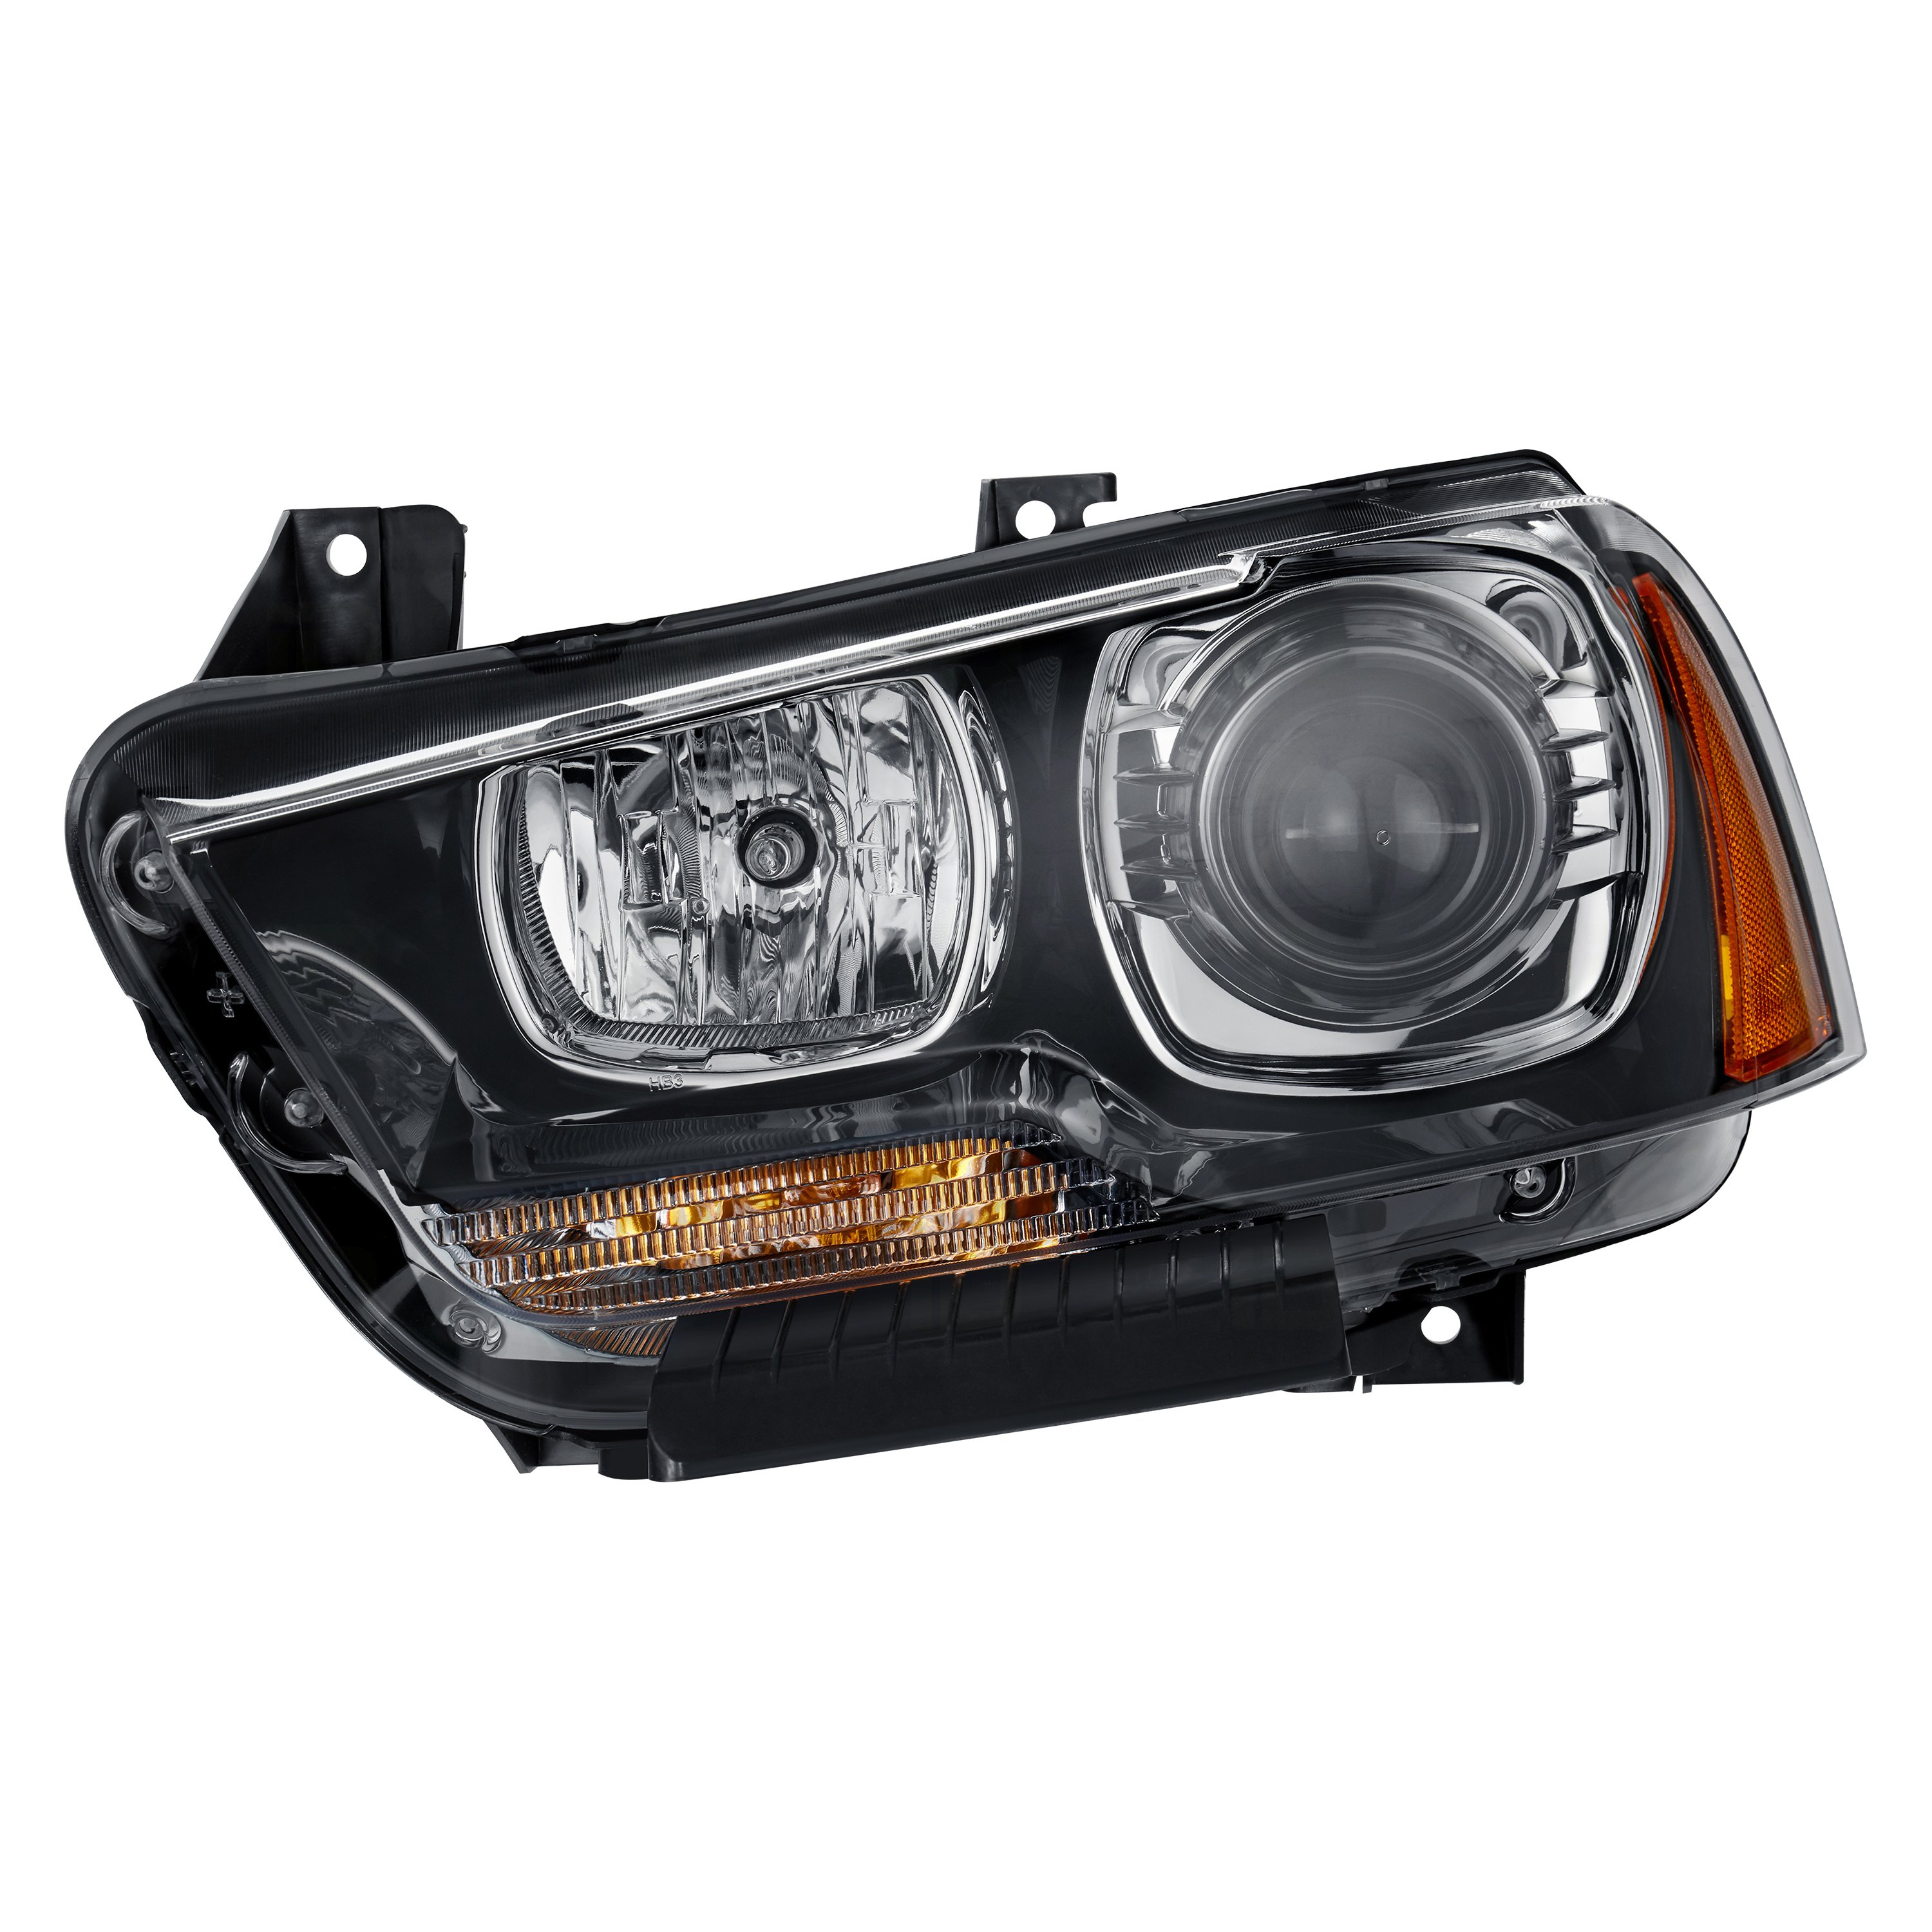 For Dodge Charger 2011 2014 Tyc 20 9202 00 1 Driver Side Replacement Headlight Ebay